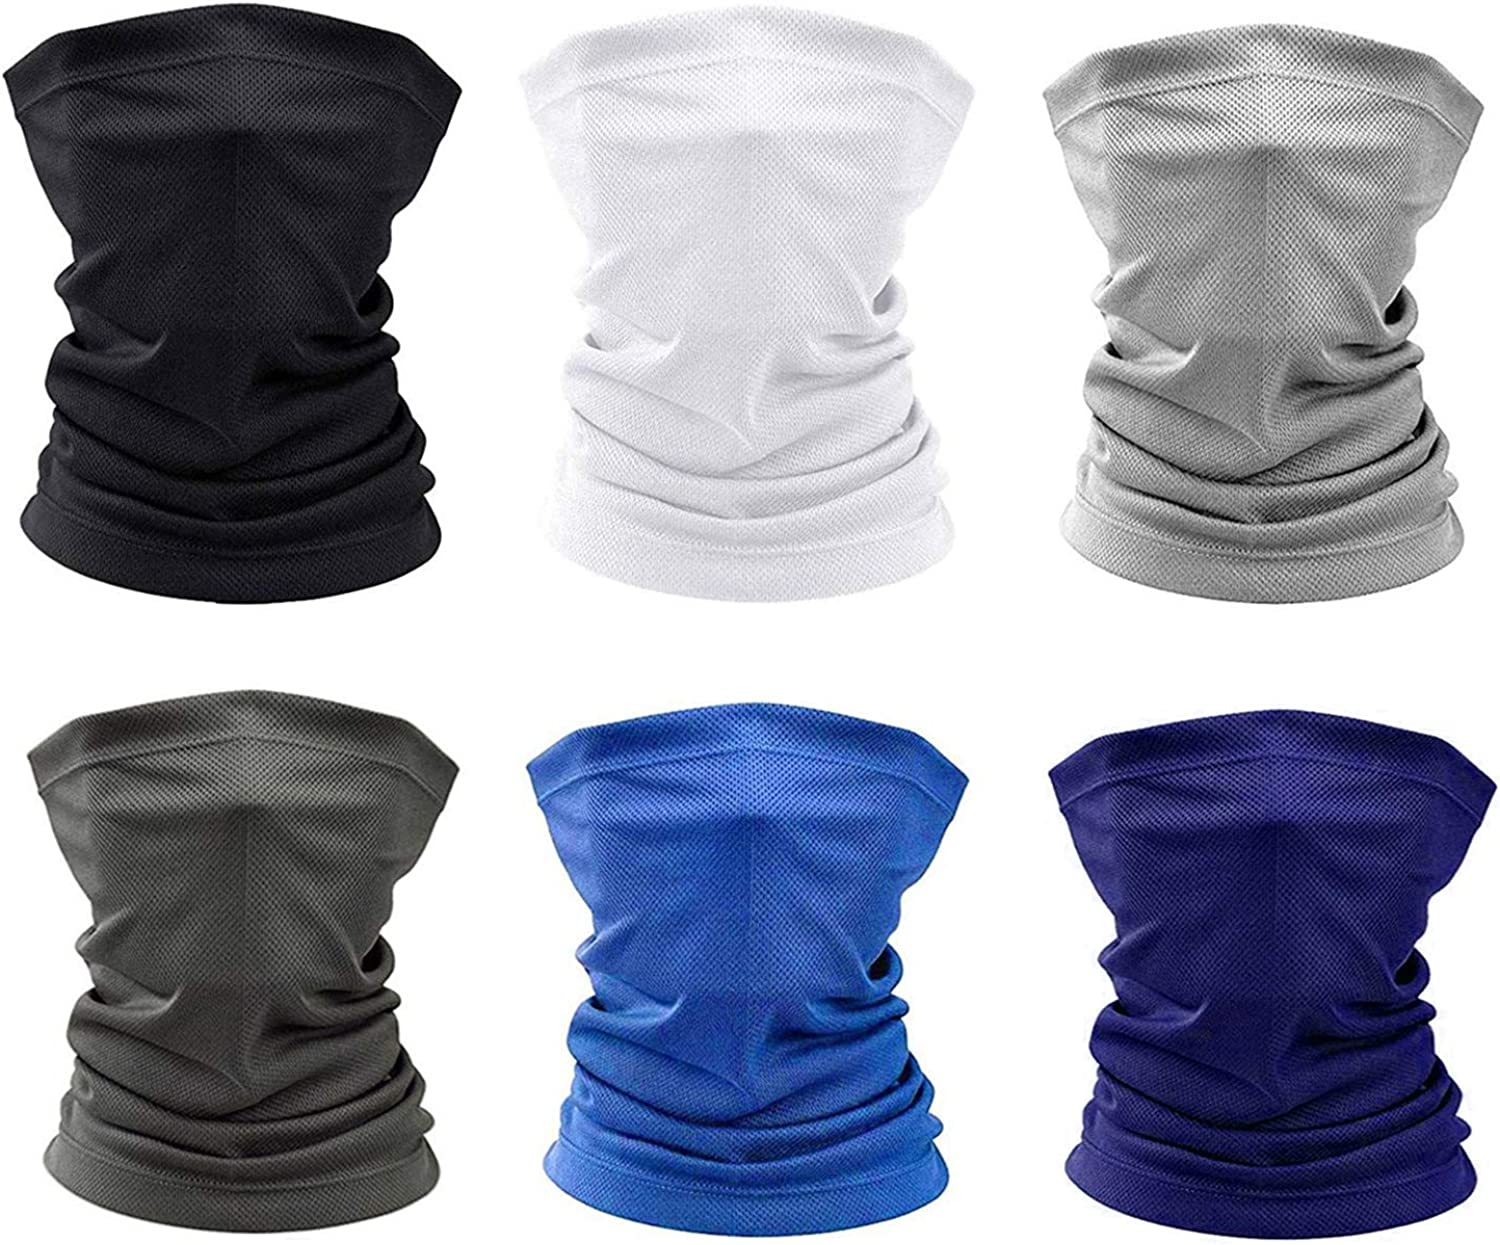 Summer Face Mask Protection from Dust, UV, Breathable Bandana, Washable Reusable Magic Face Cover